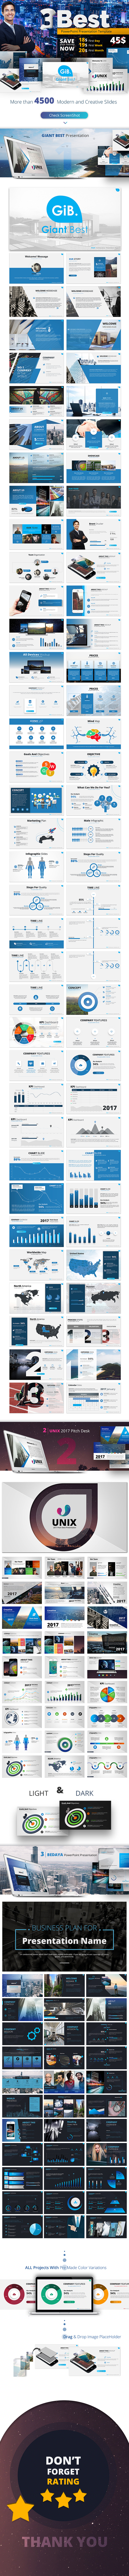 GraphicRiver 3 Best PowerPoint Template in 1 20388800